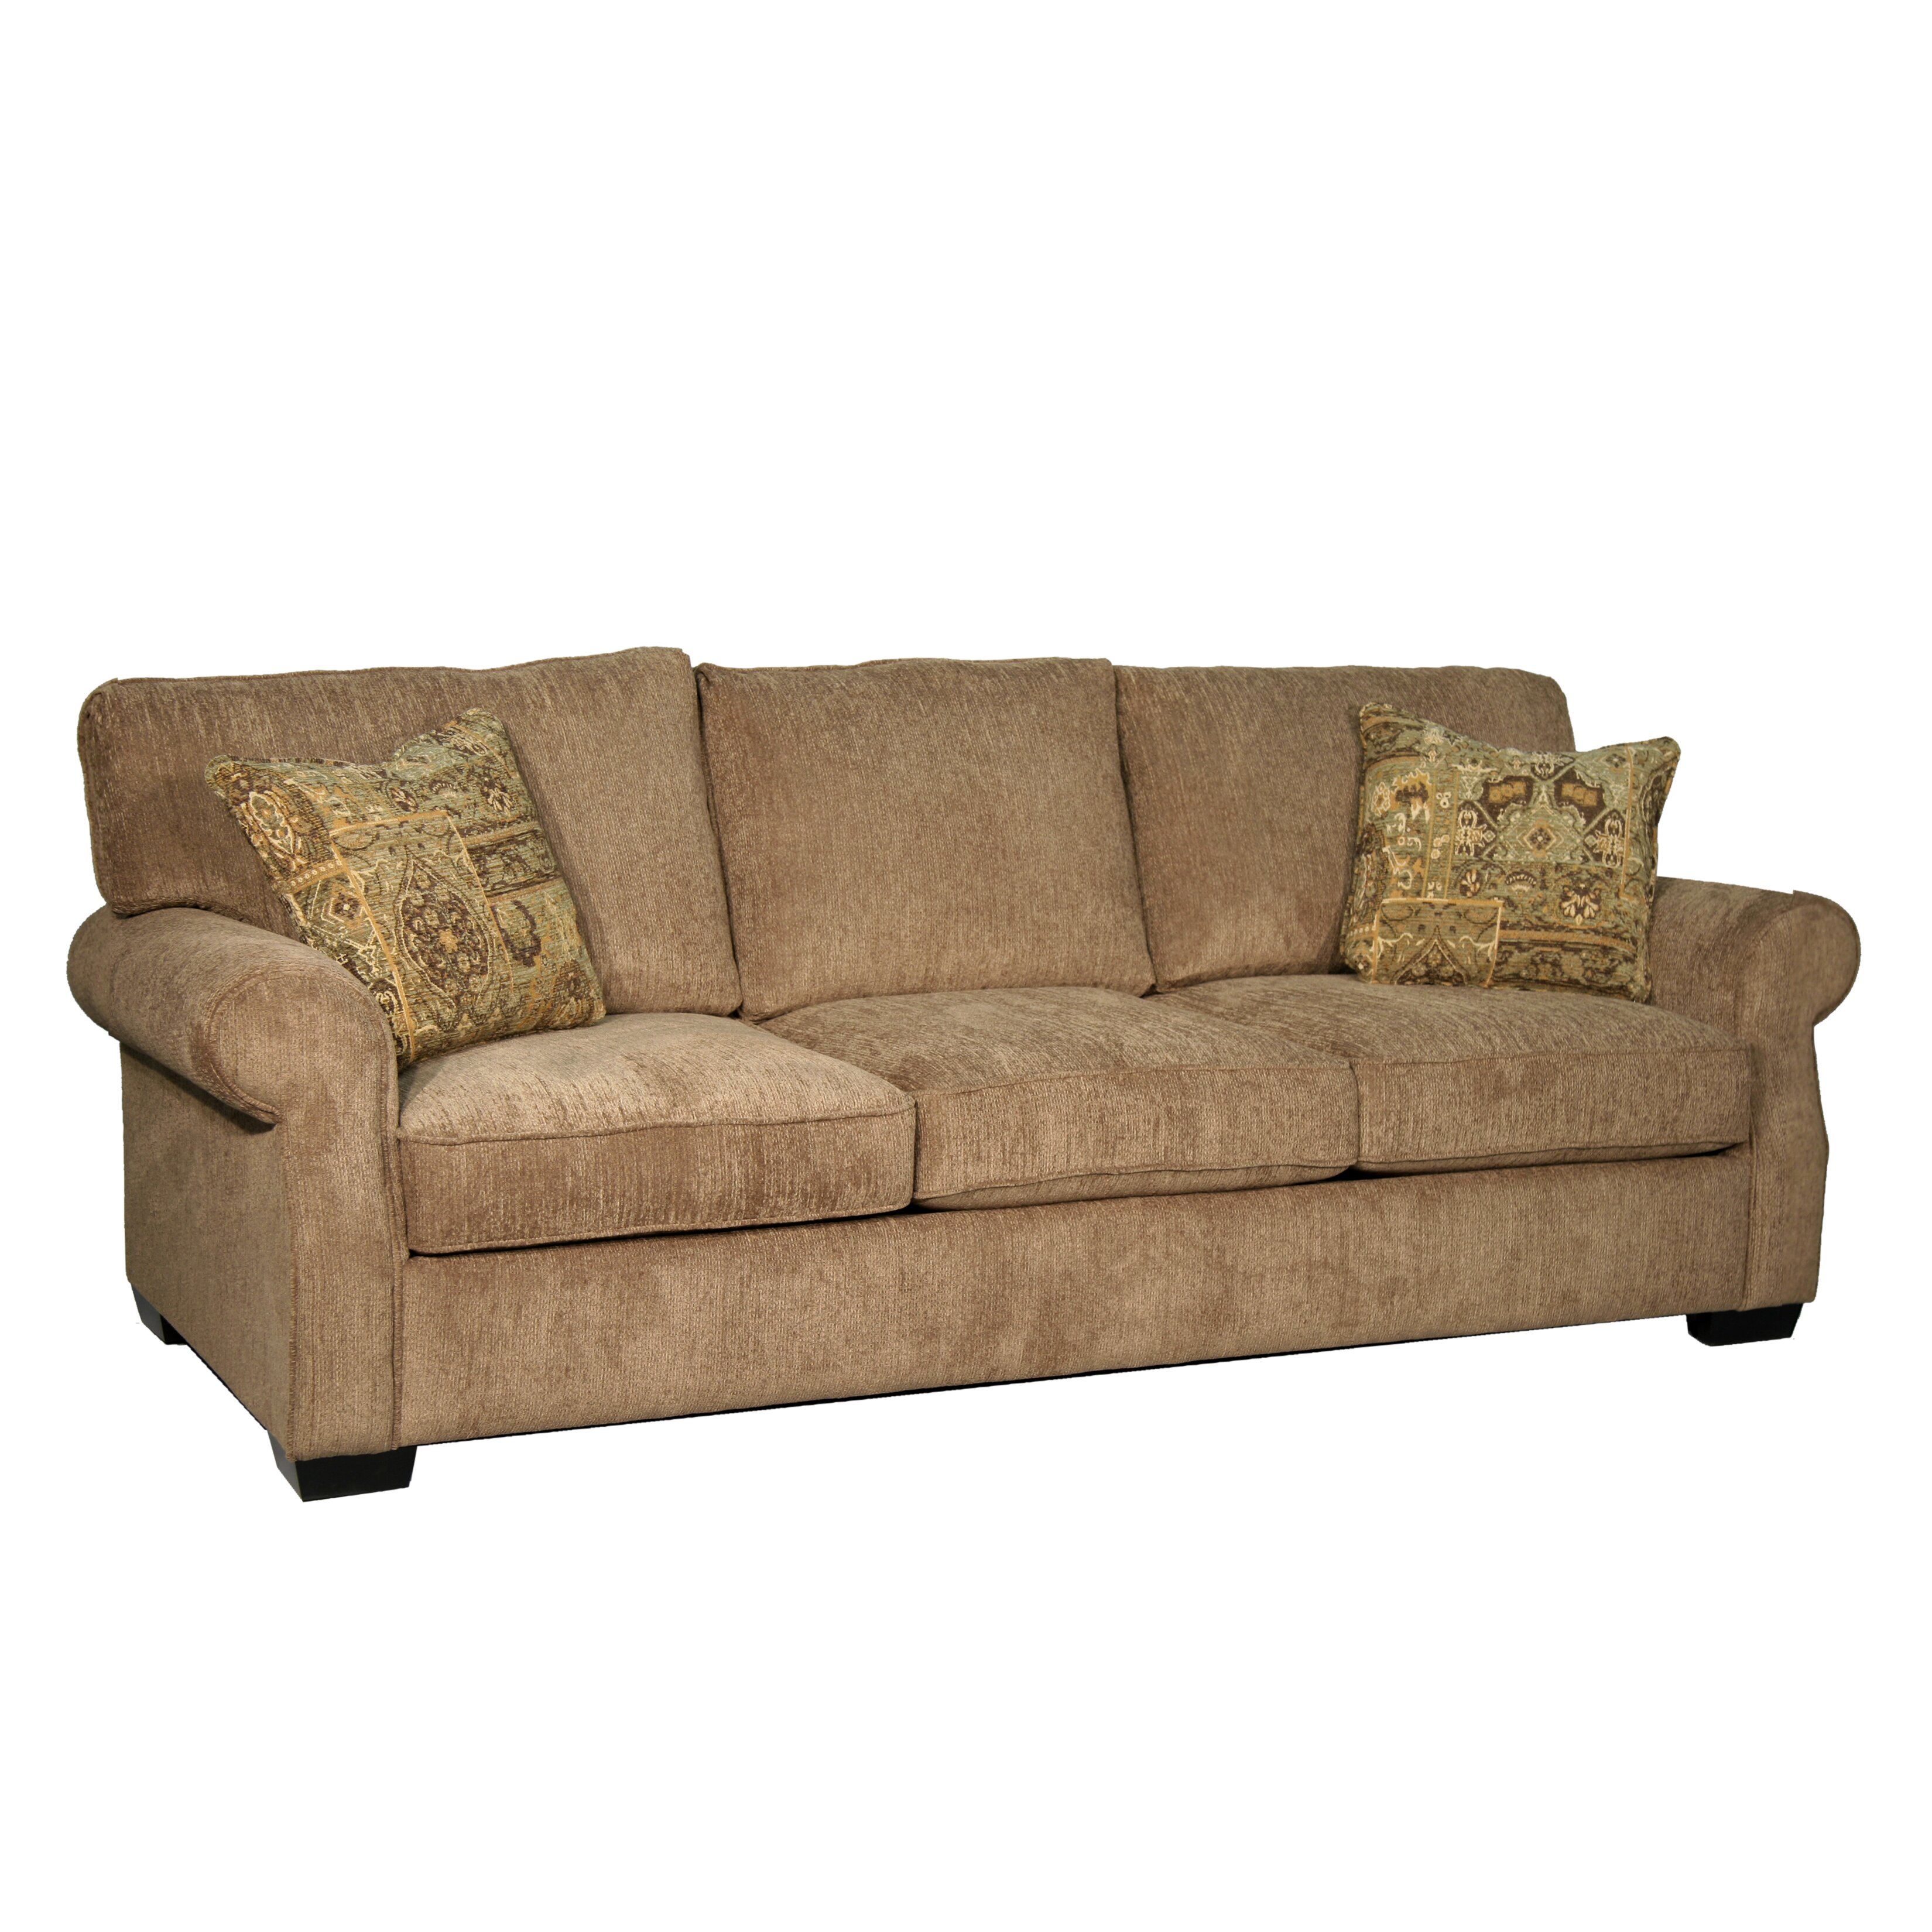 Sage Avenue Jackson Sofa & Reviews